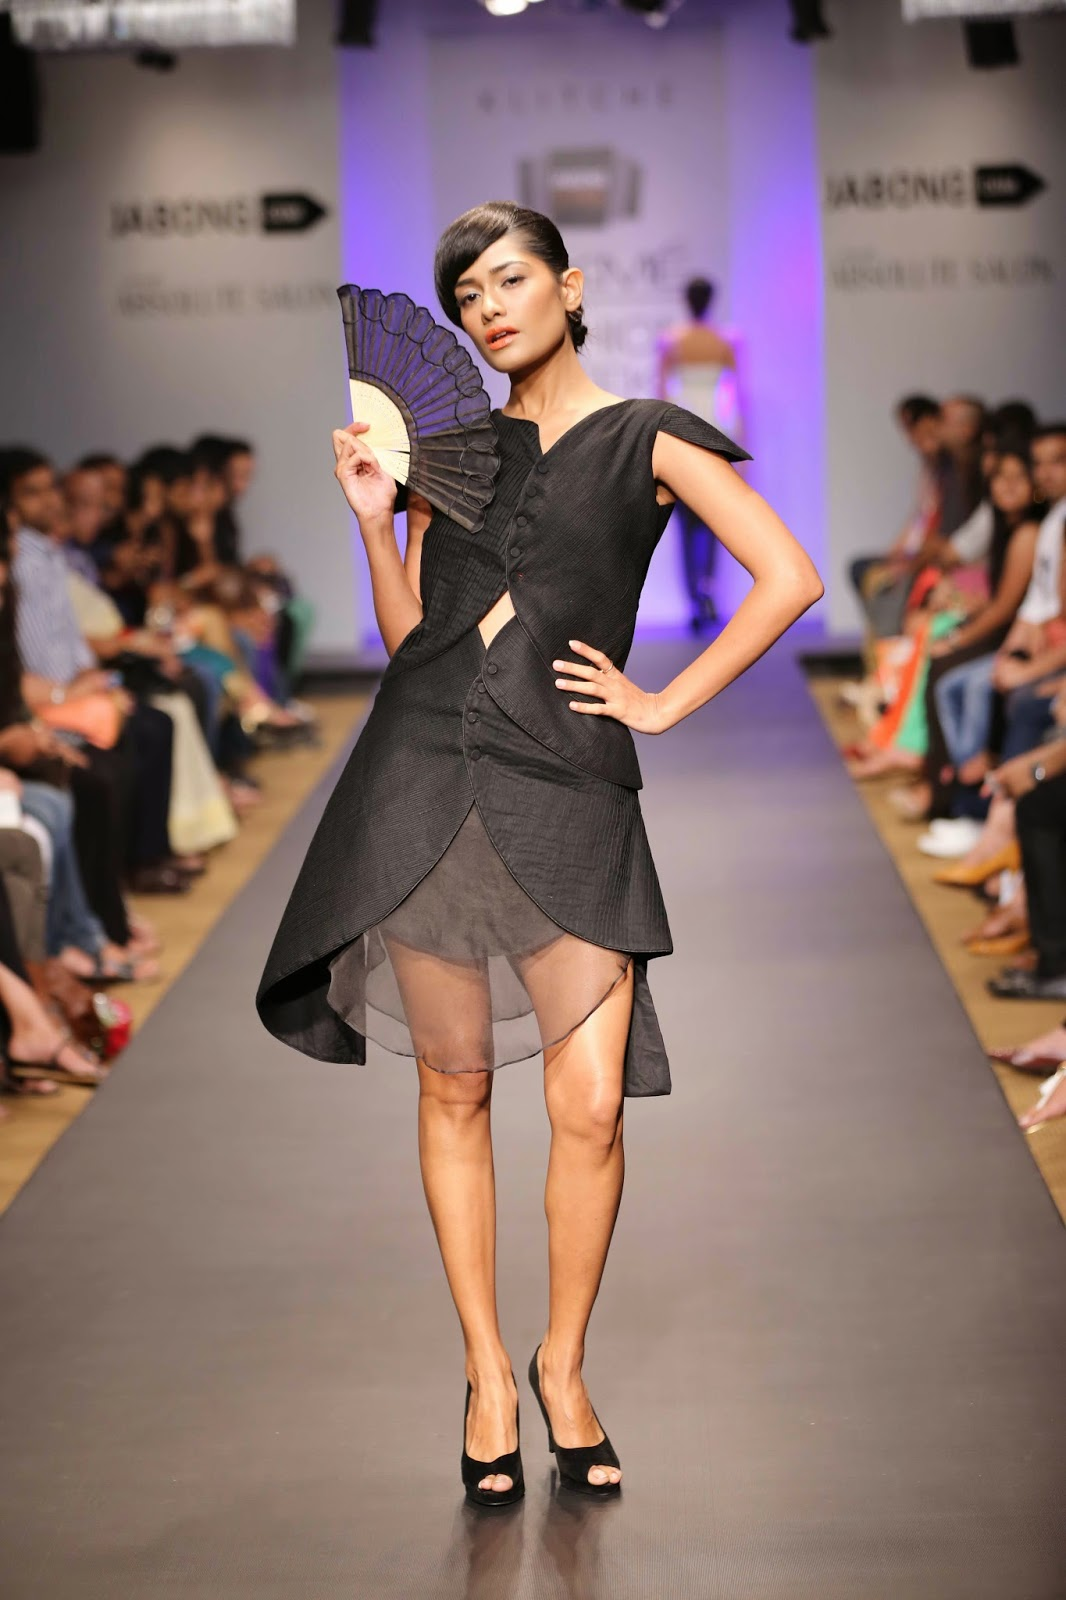 Isha Kedia under her label 'Klitché', showcased a trendy nature-meets-geometry inspired collection at Jabong Stage during Lakmé Fashion Week Summer/Resort 2014. The designer stuck to simple silhouettes like dresses, trousers, tunics, skirts and gowns crafted in light fabrics like chiffon and organza.